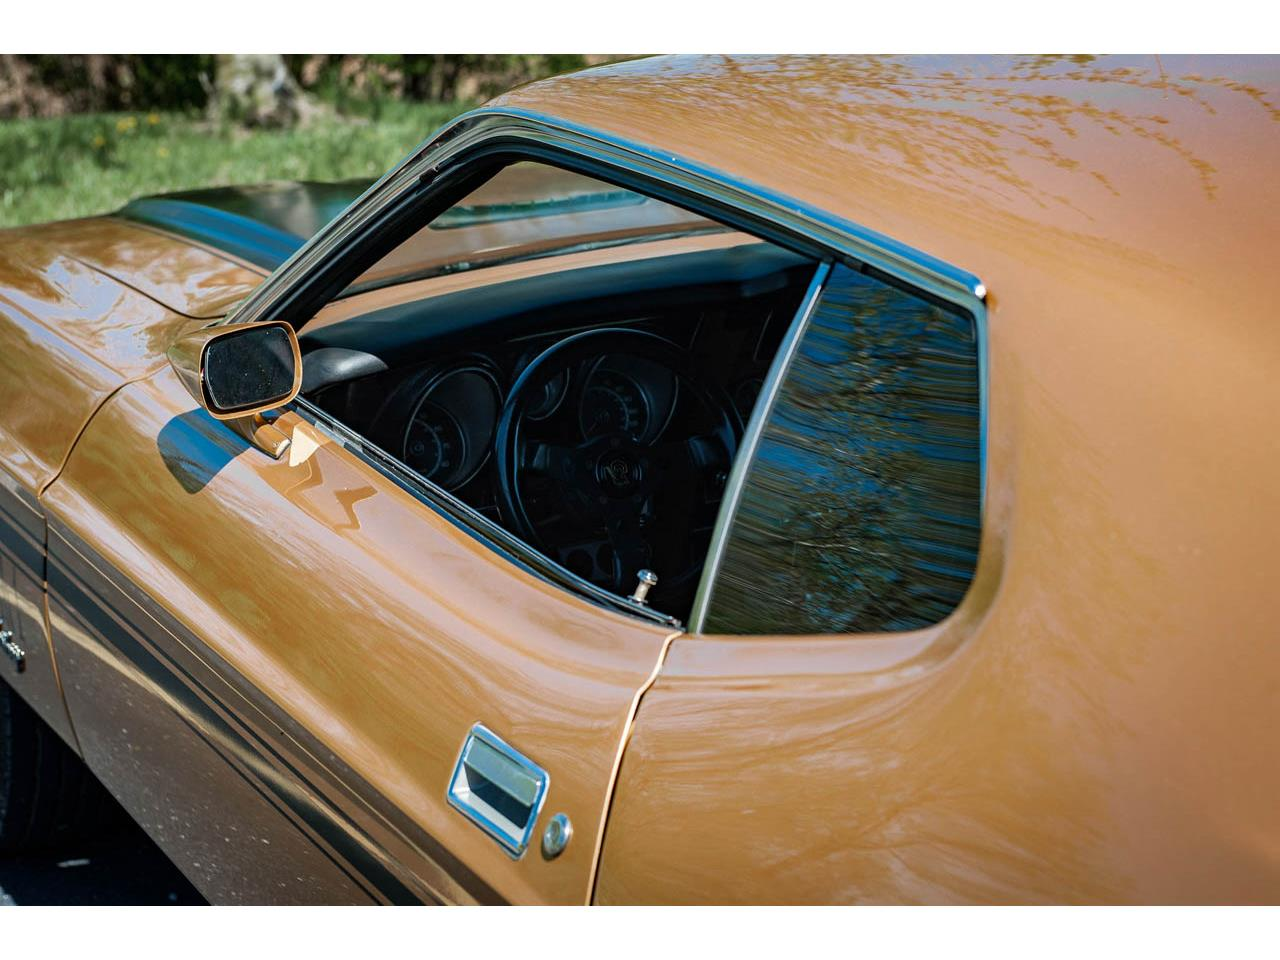 Large Picture of '73 Ford Mustang located in Illinois - $34,500.00 Offered by Gateway Classic Cars - St. Louis - QB8T